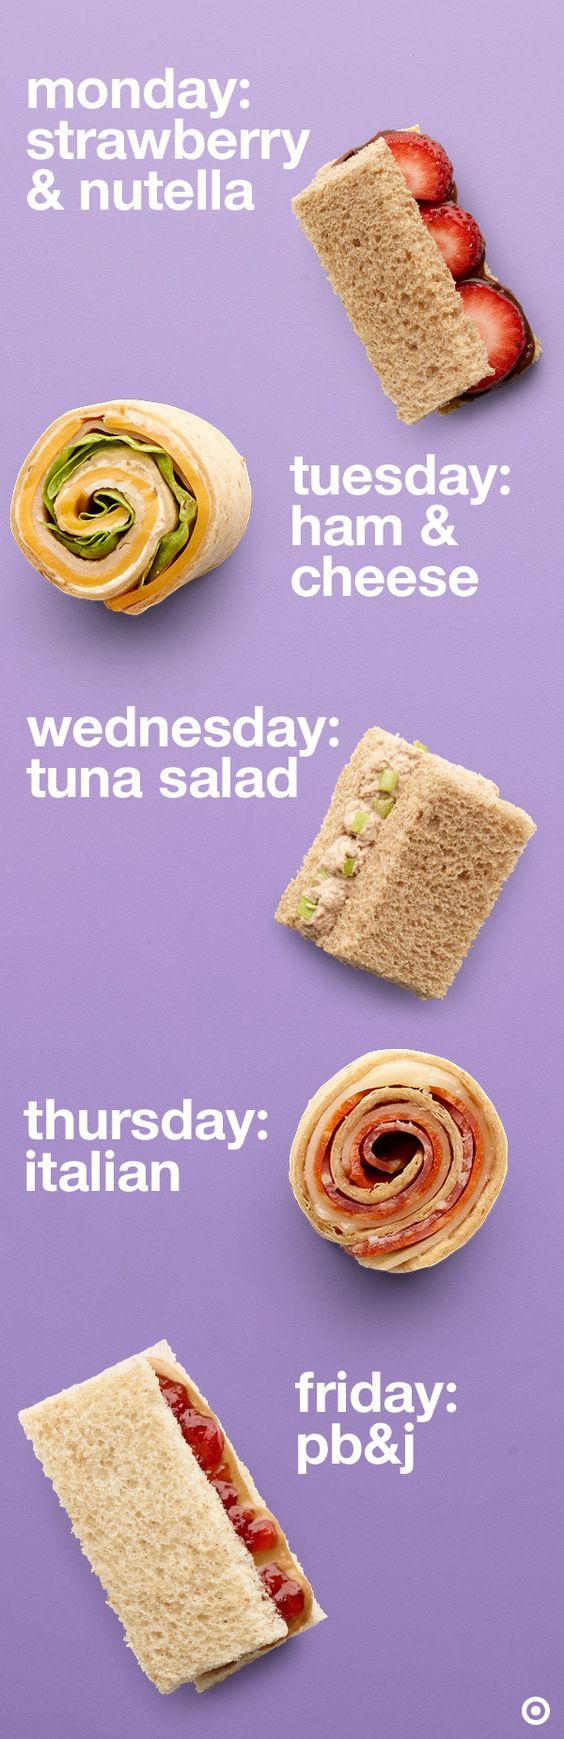 Whip up these kid-approved sandwiches for lunch every day of the school week: Strawberry & Nutella, Ham & Cheese Pinwheel, Tuna Salad, Italian Pinwheel, Peanut Butter & Jelly. From faves to firsts, shake things up with these new ideas and ingredients to create yummy brown bag lunches.